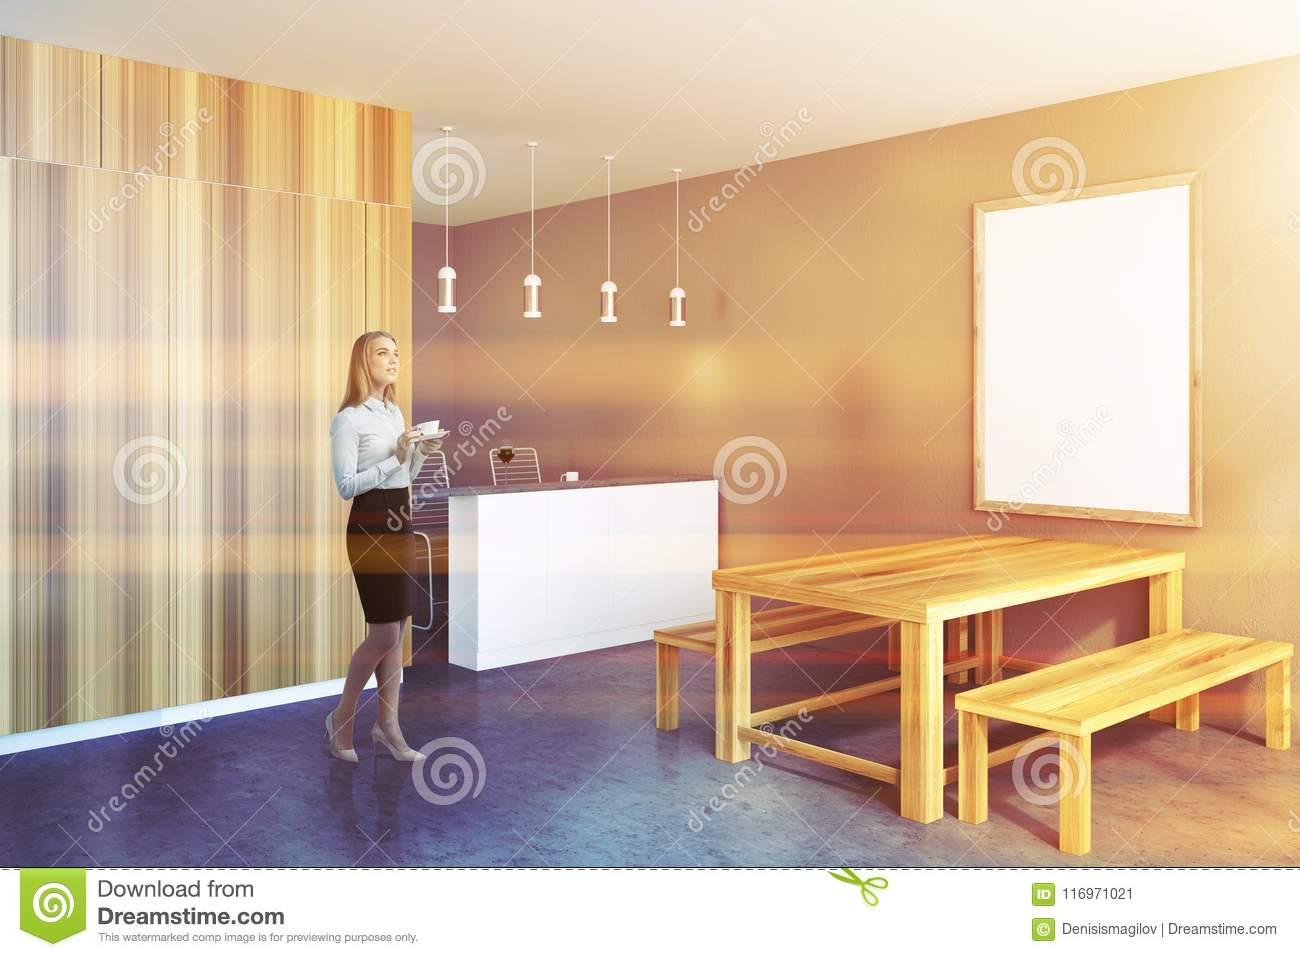 Businesswoman in a rustic kitchen, frame poster